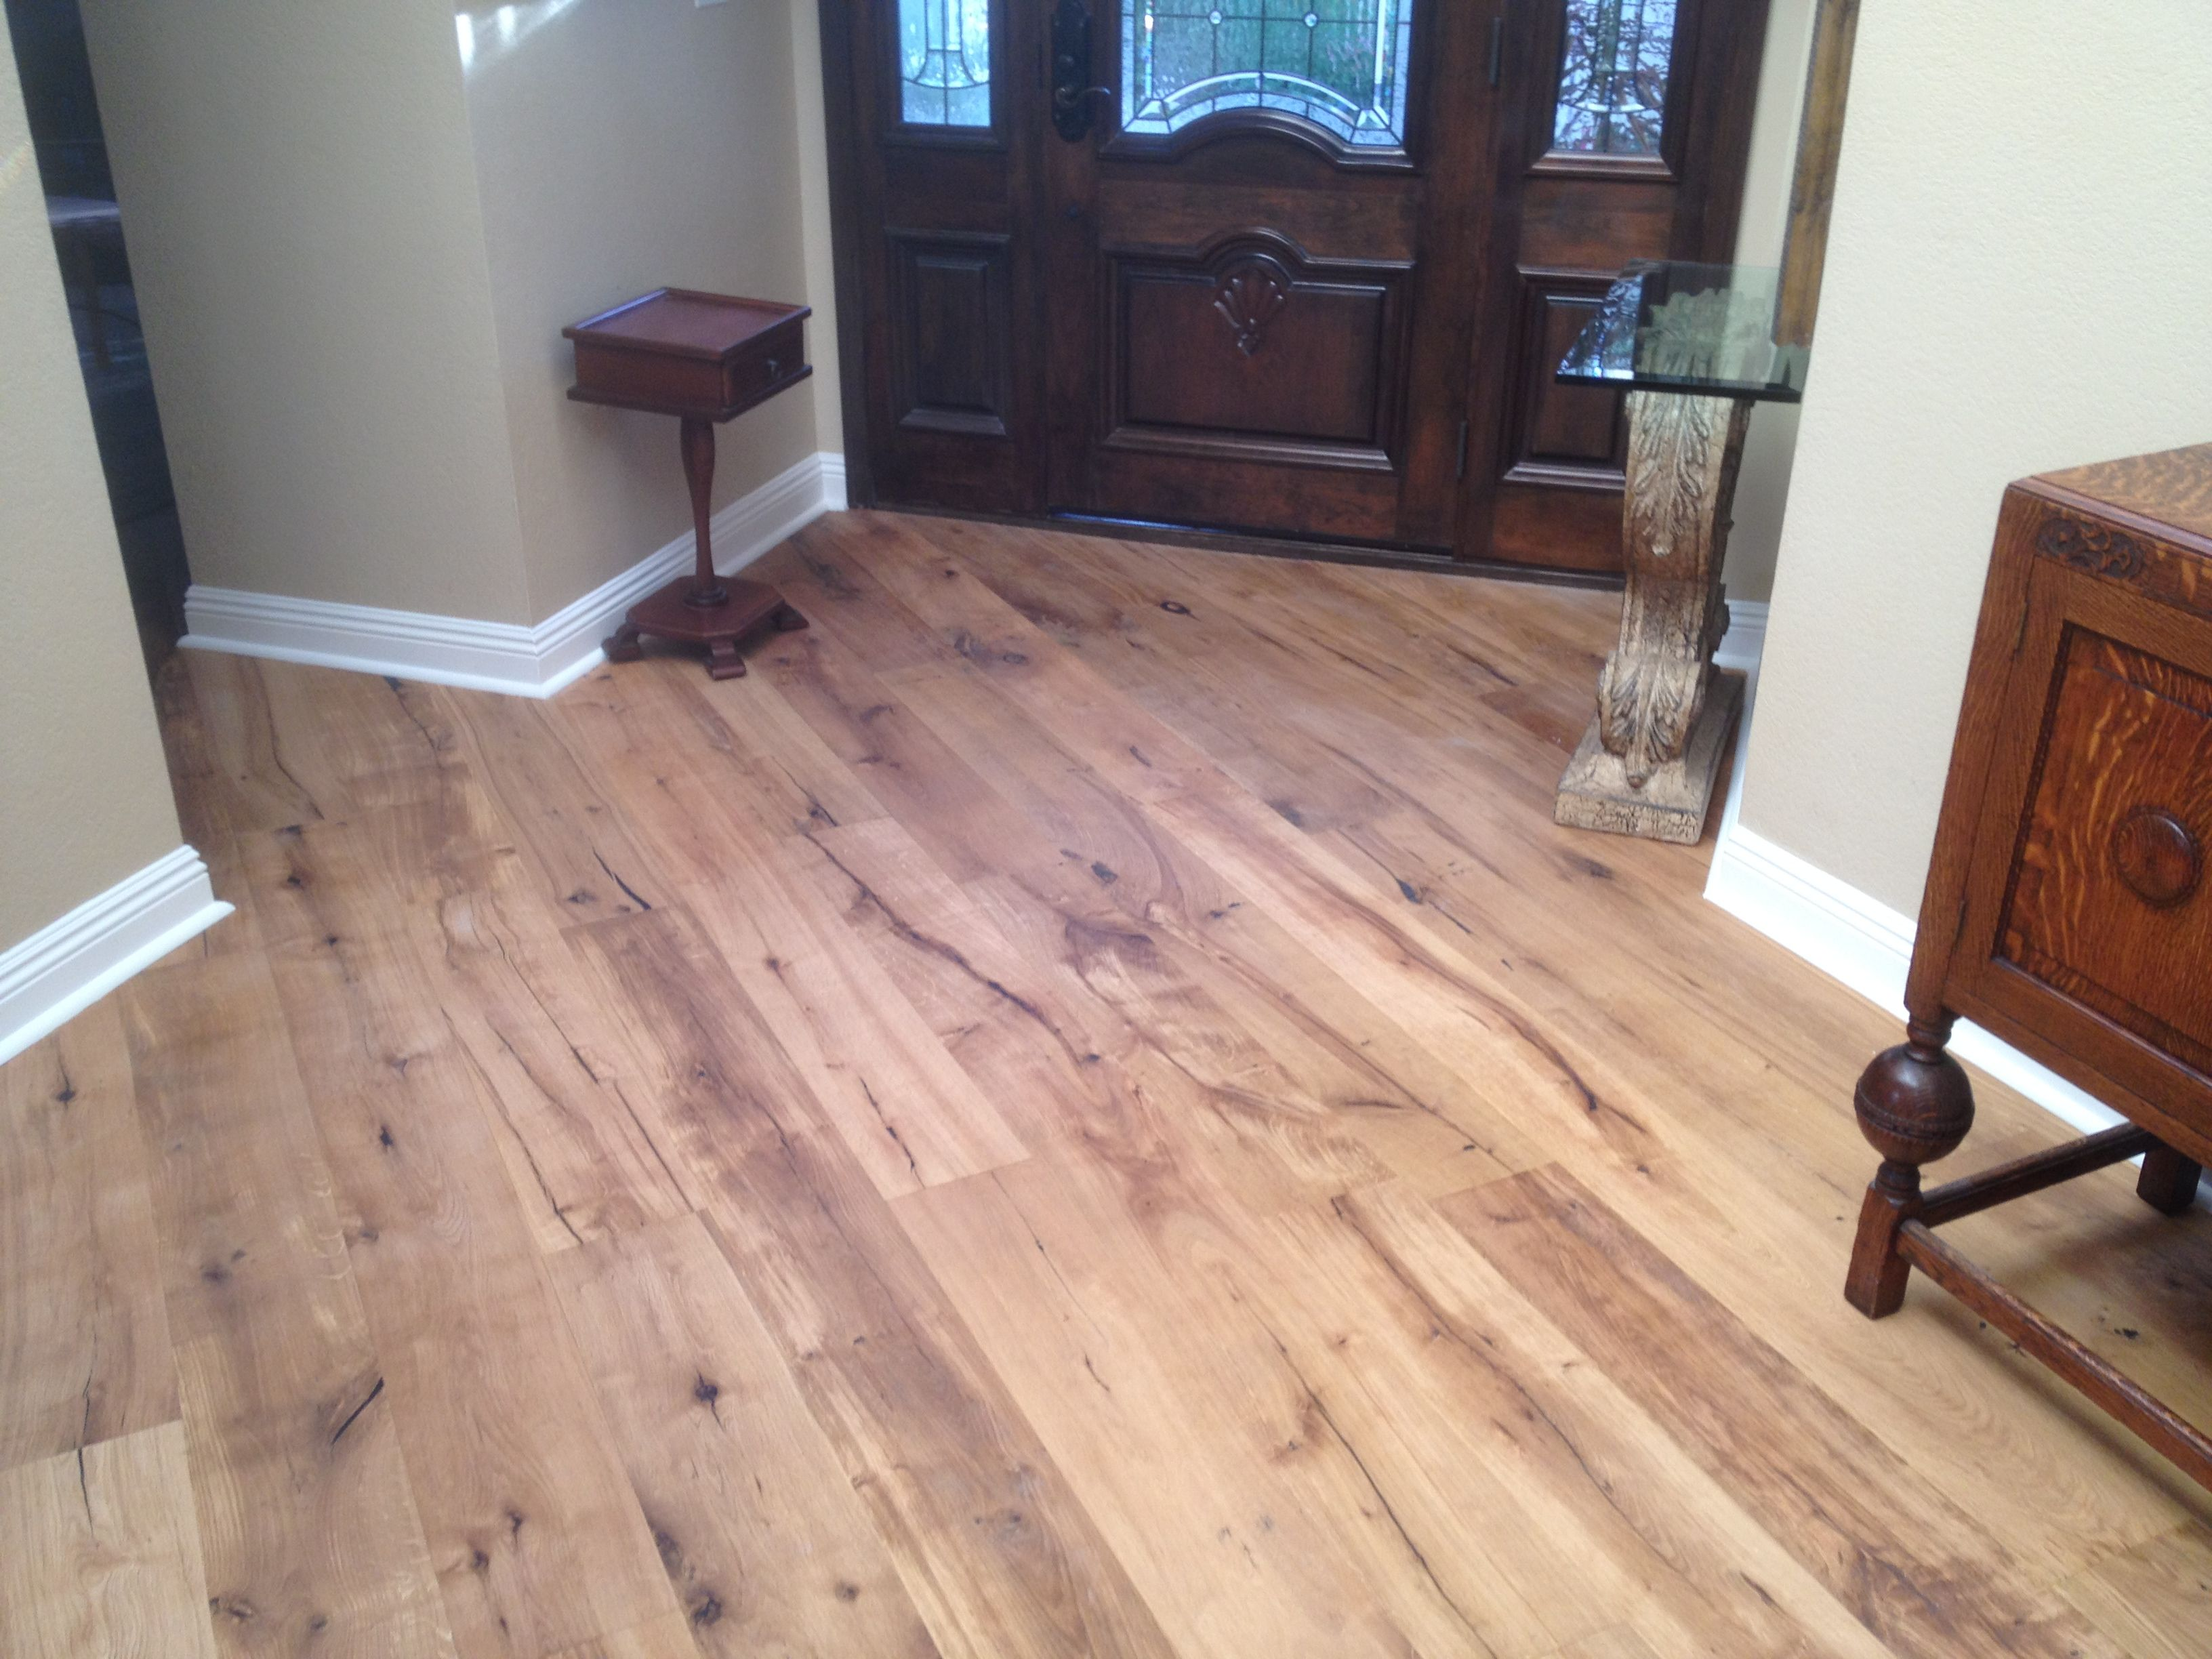 Tile That Looks Like Hardwood Floors You Got A New Home With Carpet Ceramic Or